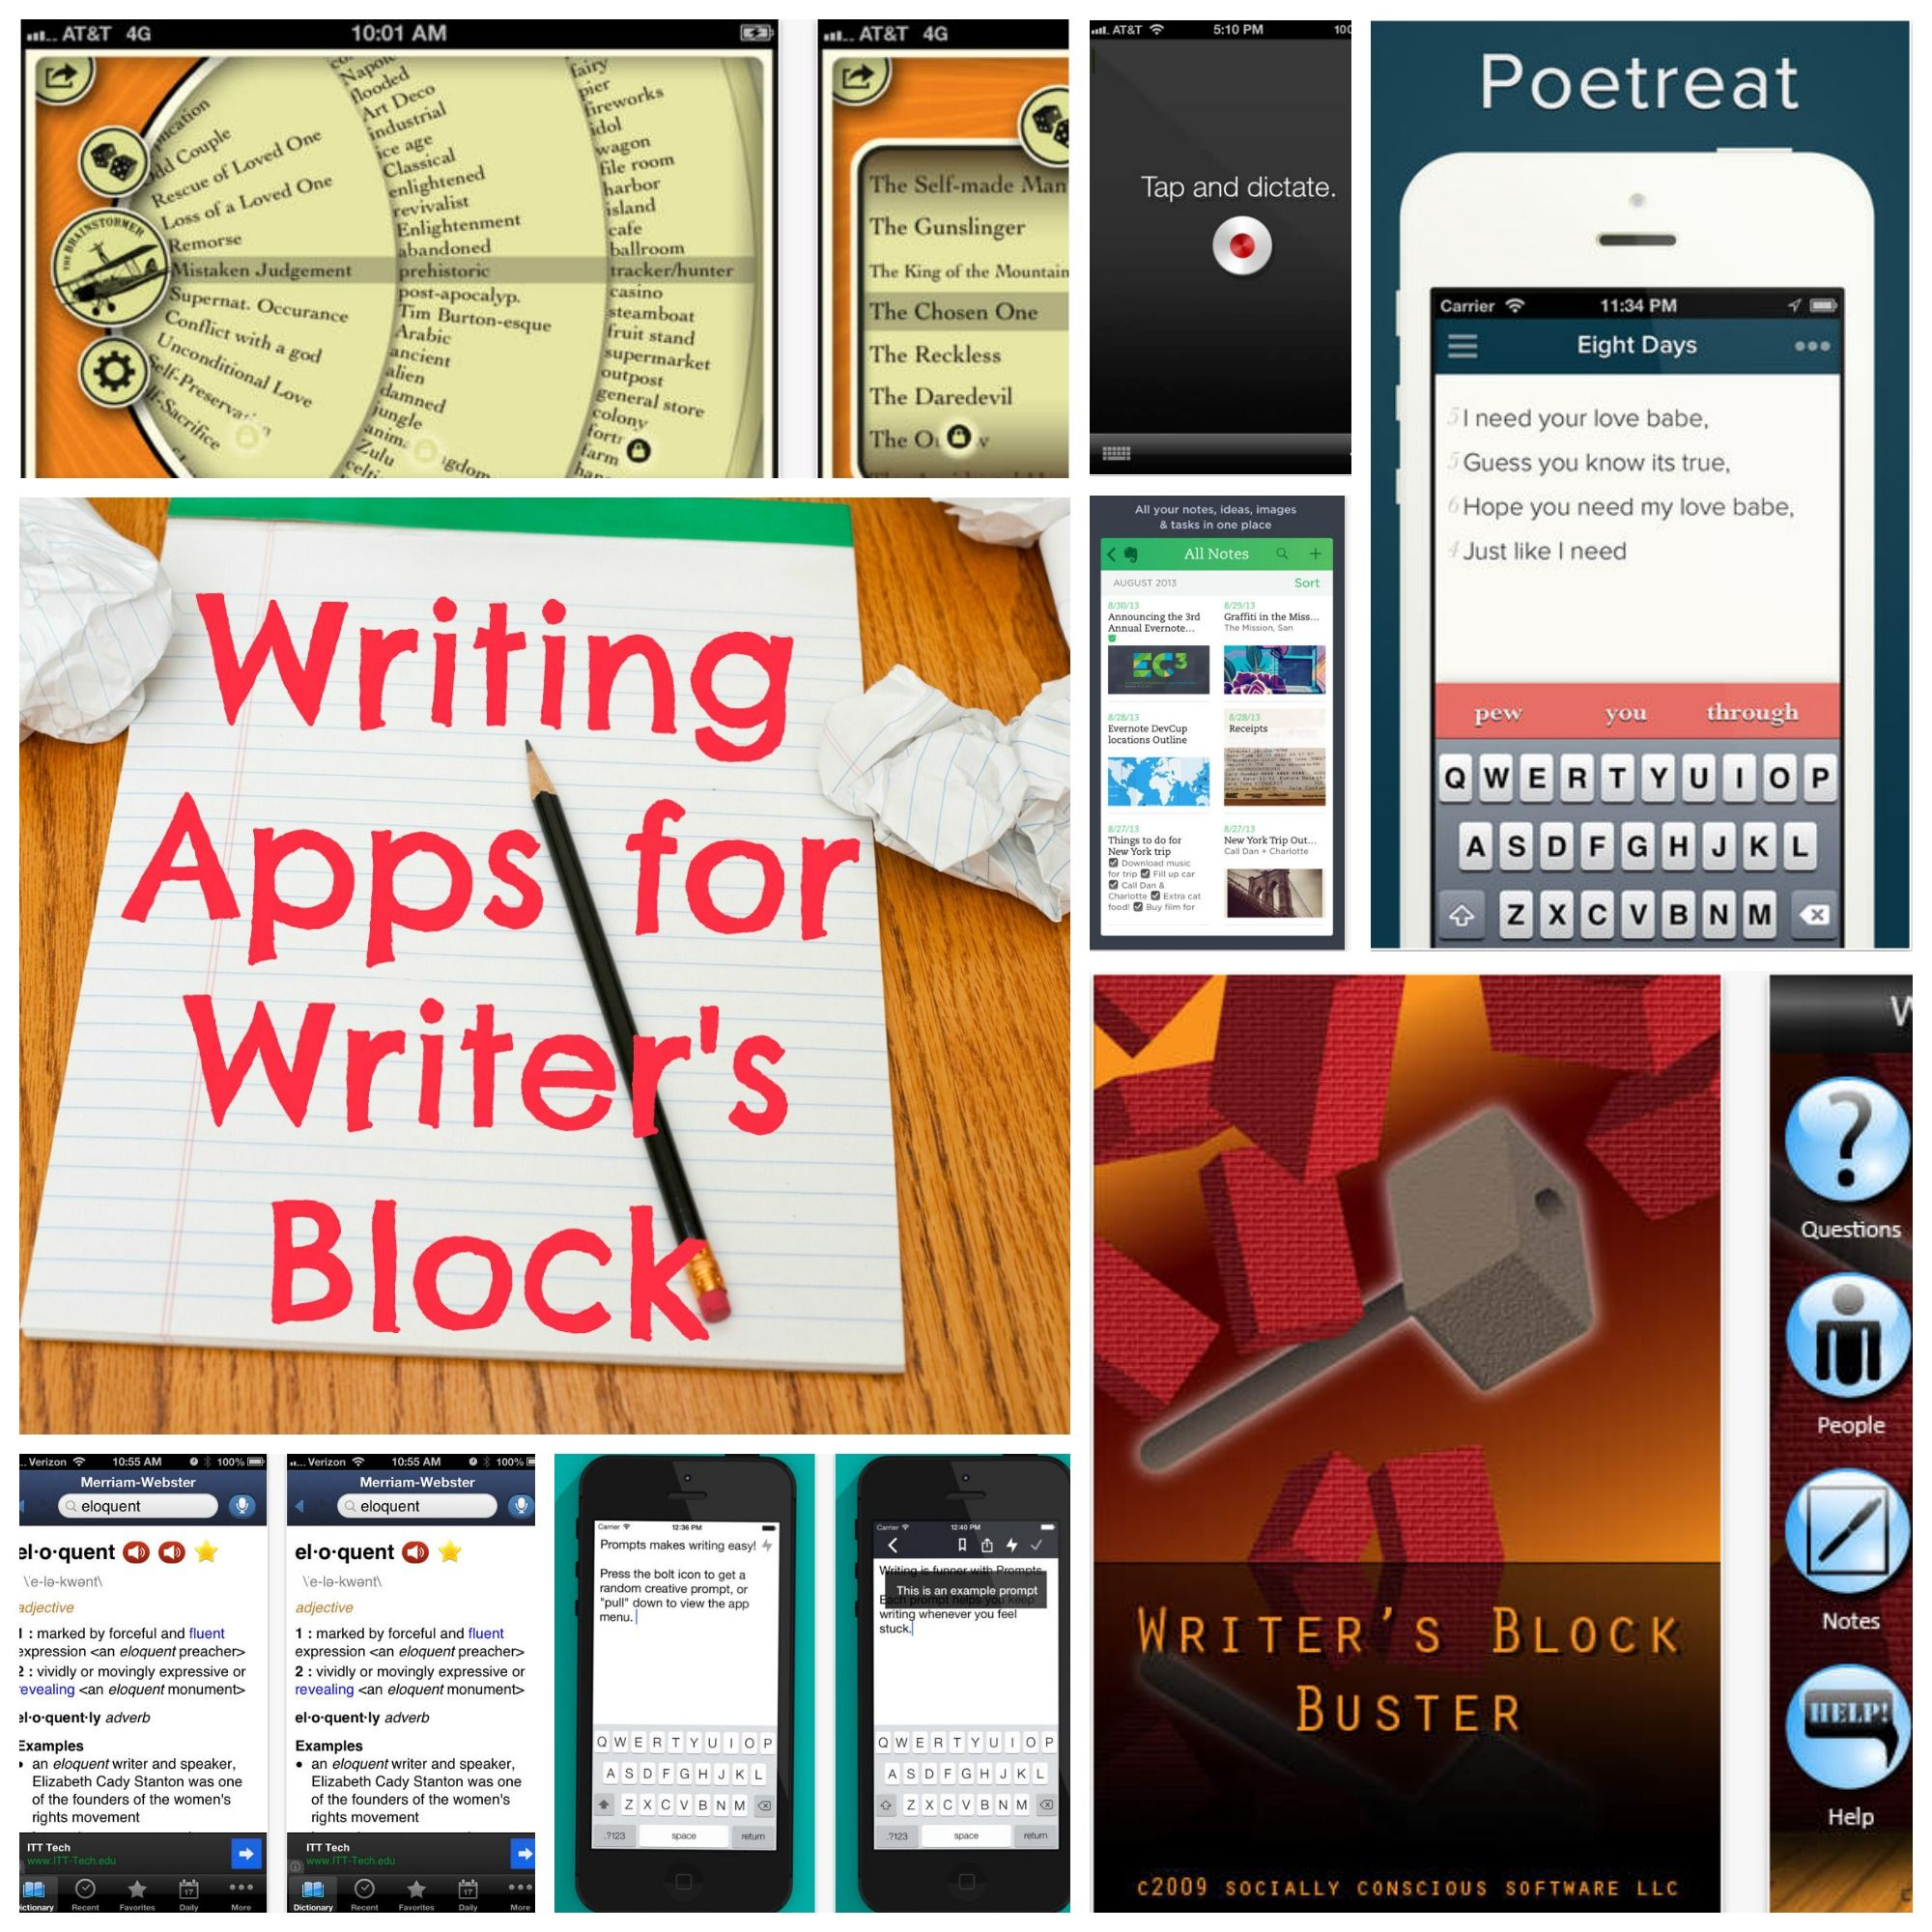 apps to help writers block About the show online created by david benjamin tomlinson and matt watts and starring aurora brown e (baroness von sketch show) , the writers' block is a 10-episode cbc original series following three writers struggling to write a television series while the narrative of their own lives spin out of control.